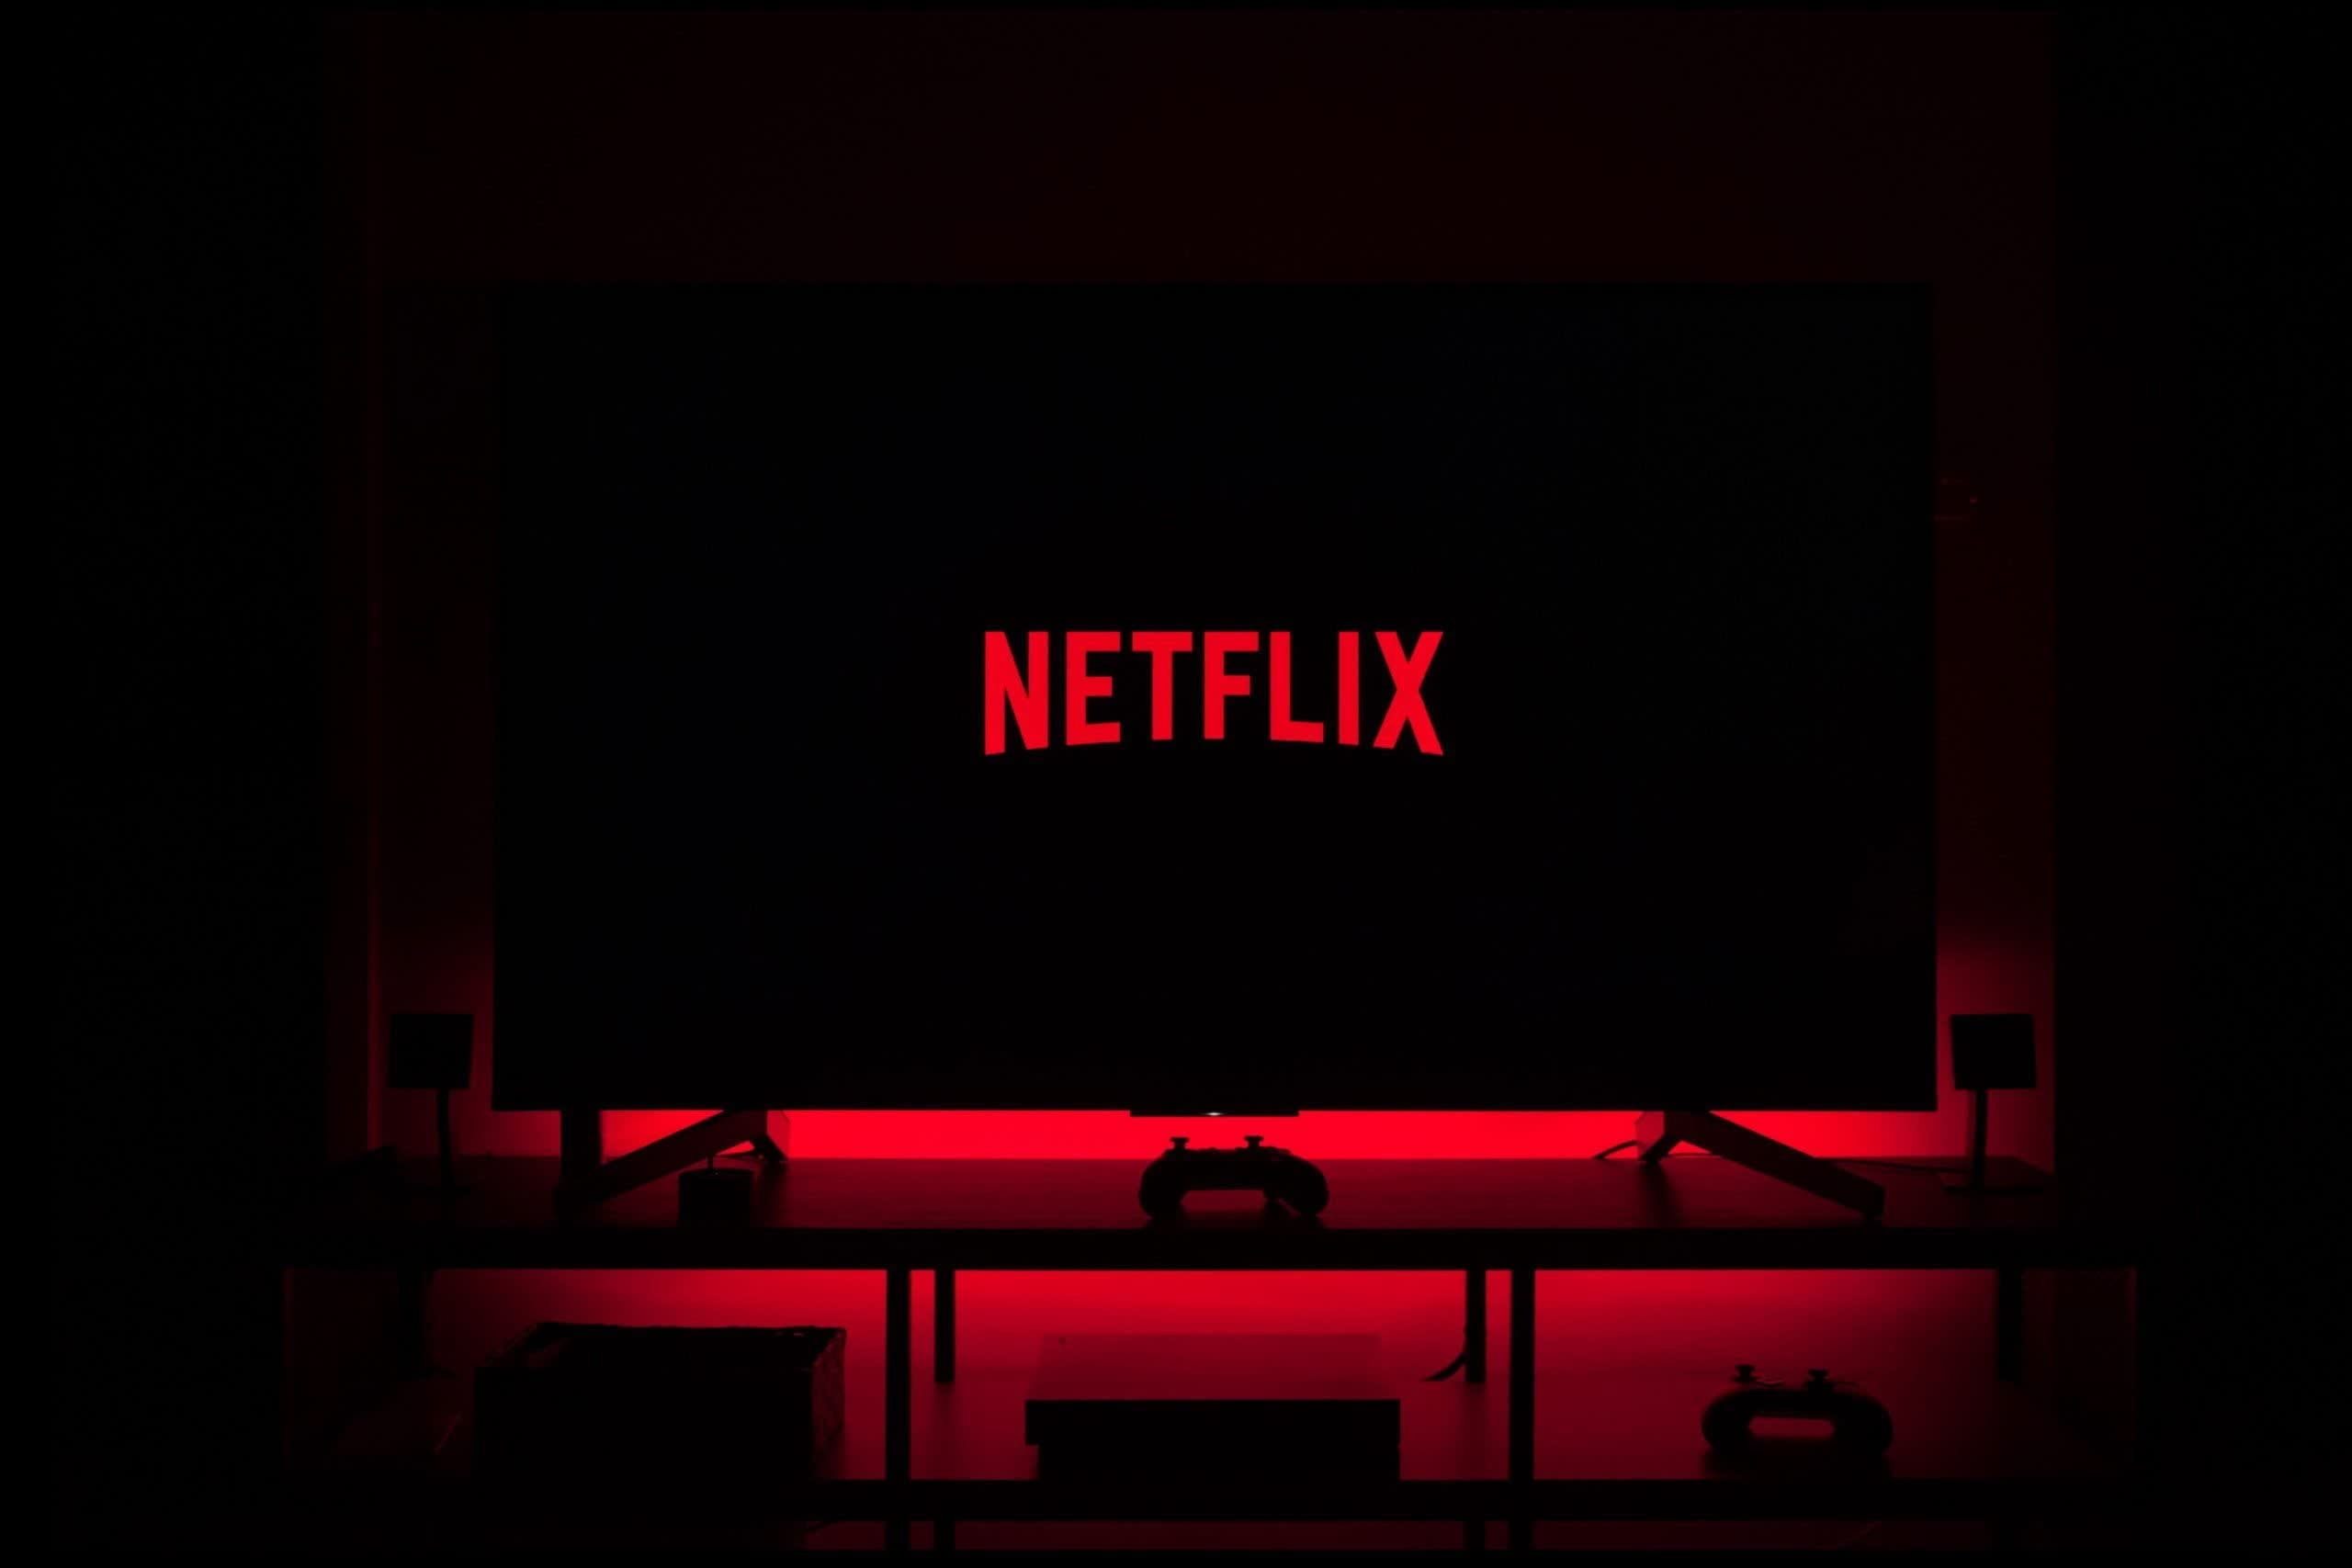 Netflix combats VPN region bypassing by blocking some residential IP addresses